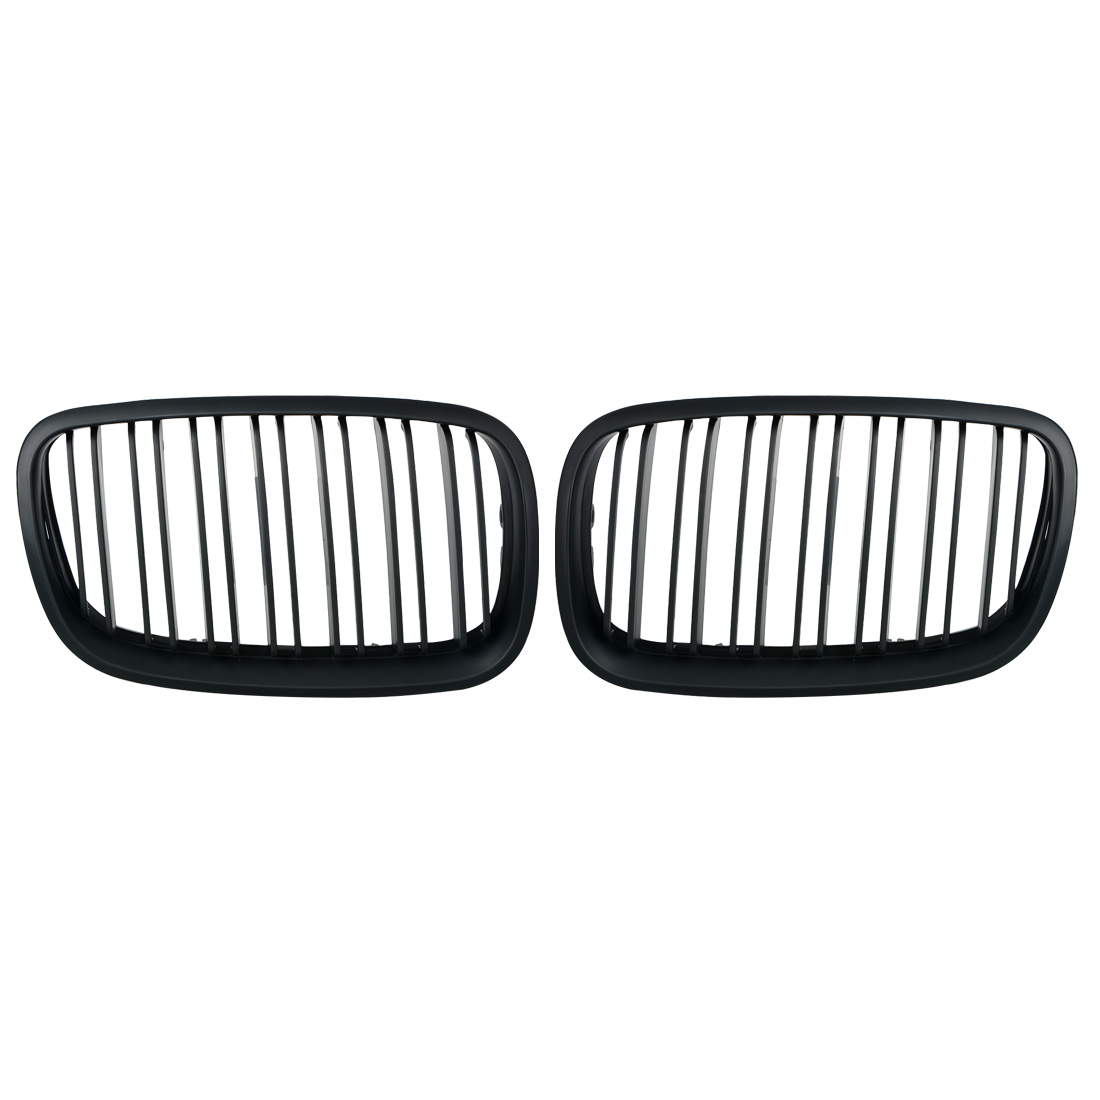 2pcs Matte Black Double Slat Kidney Grille Front Grill For BMW E70 E71 Model X5 X6 SUV M Sport xDrive 2007-2013 Car Styling стоимость